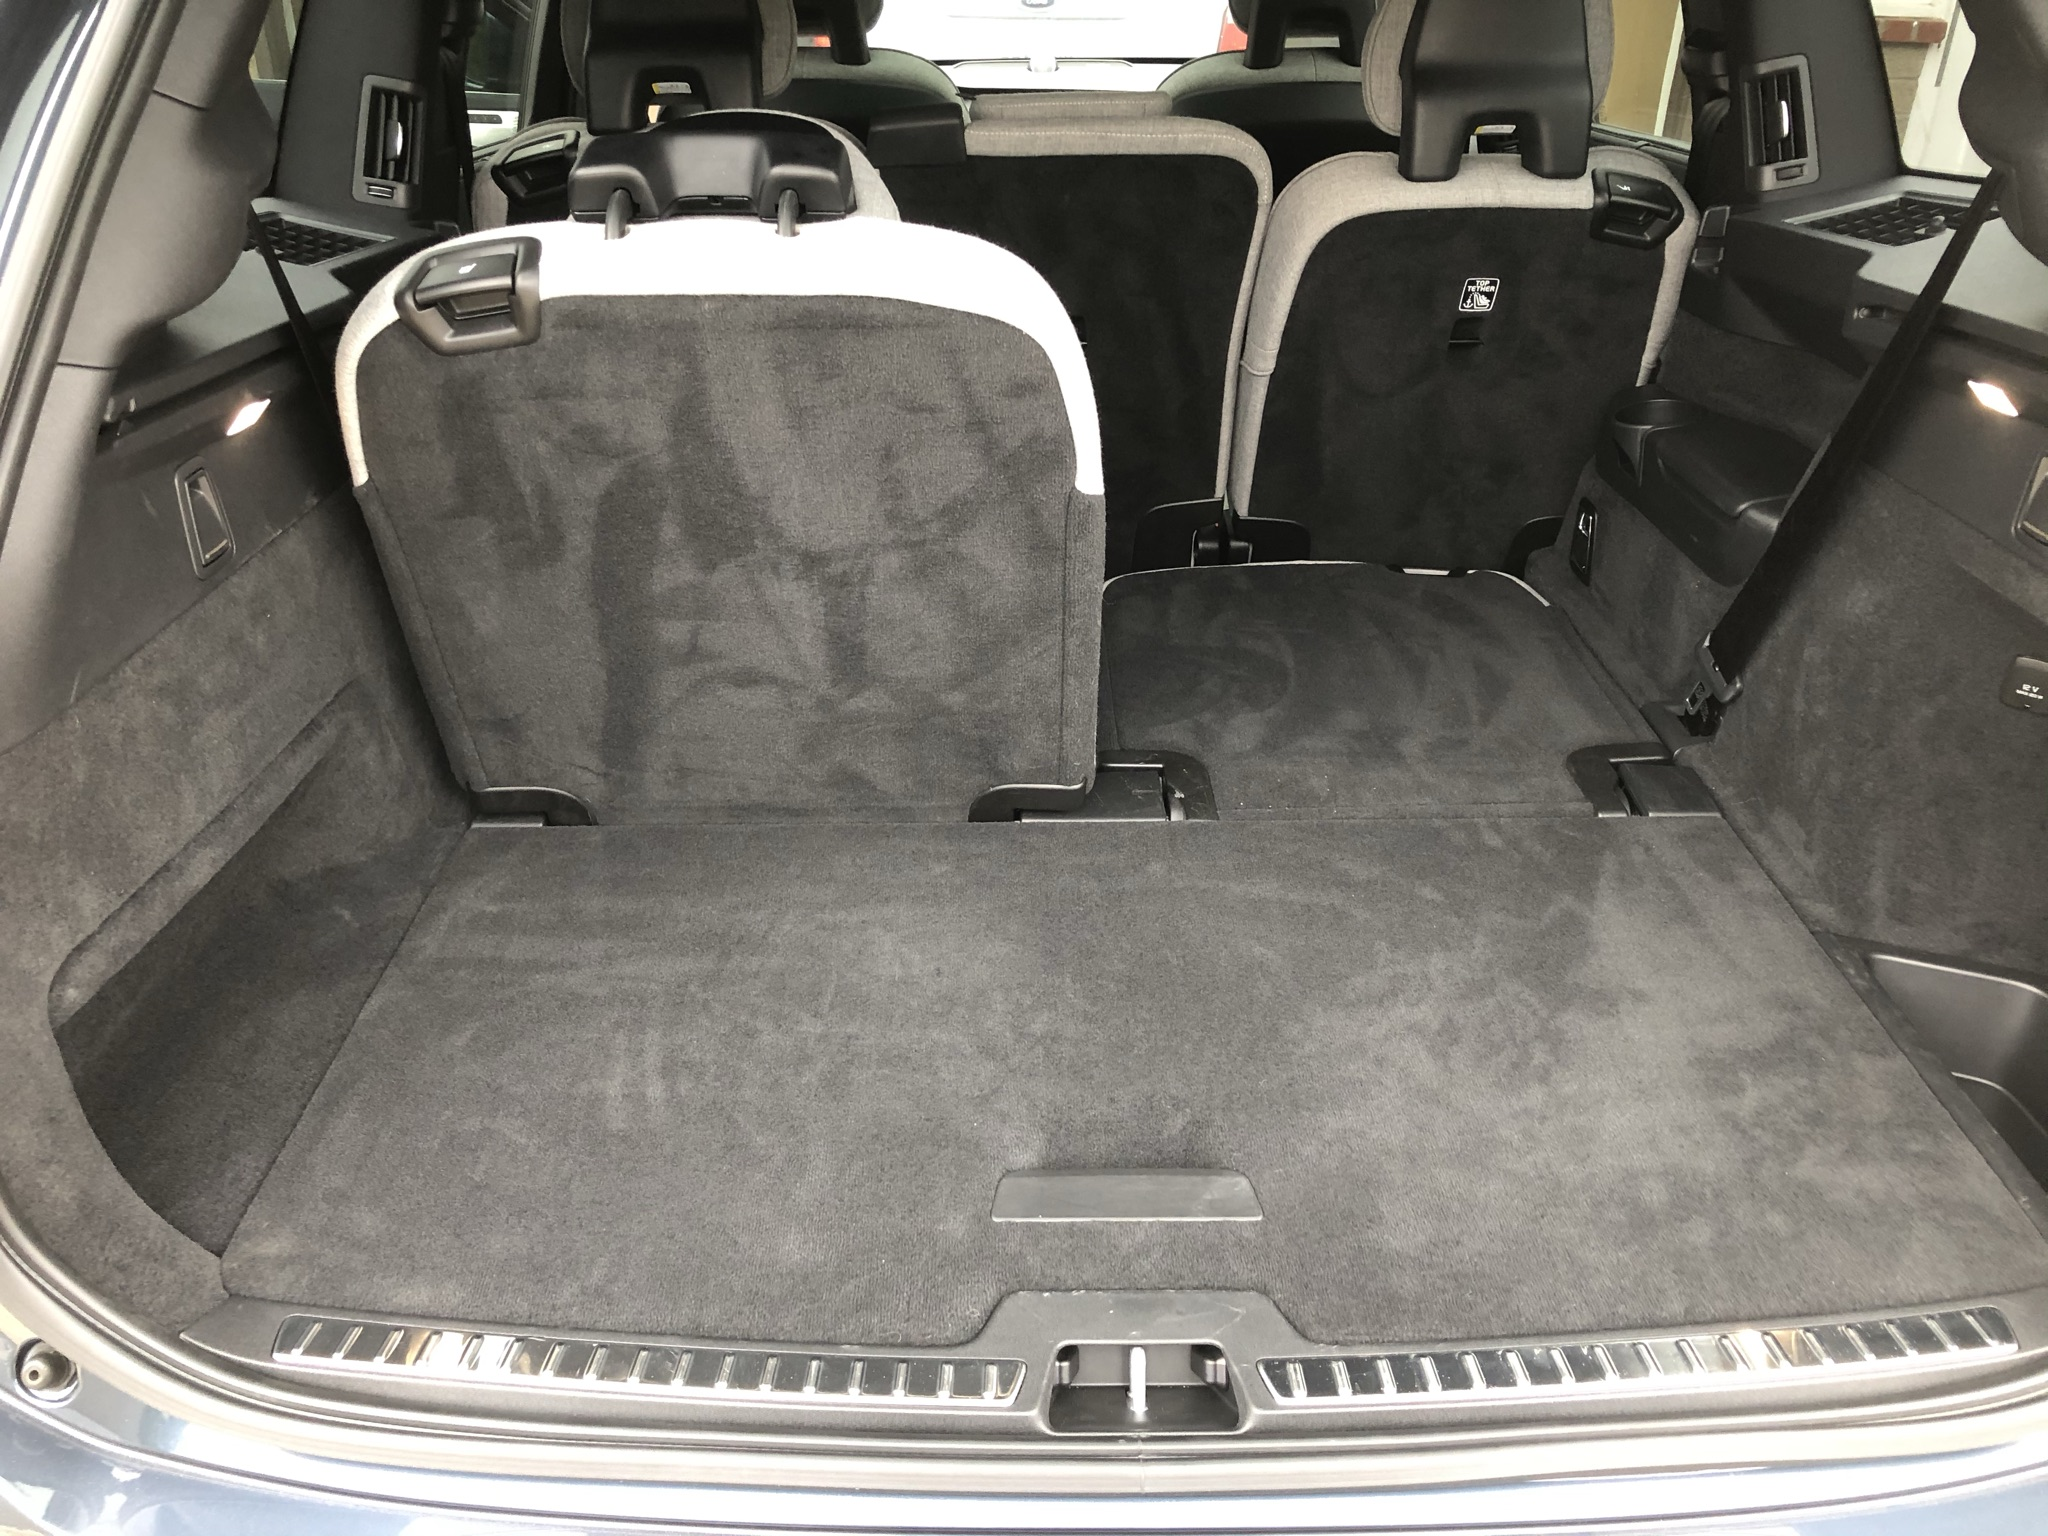 Cargo space in the XC90